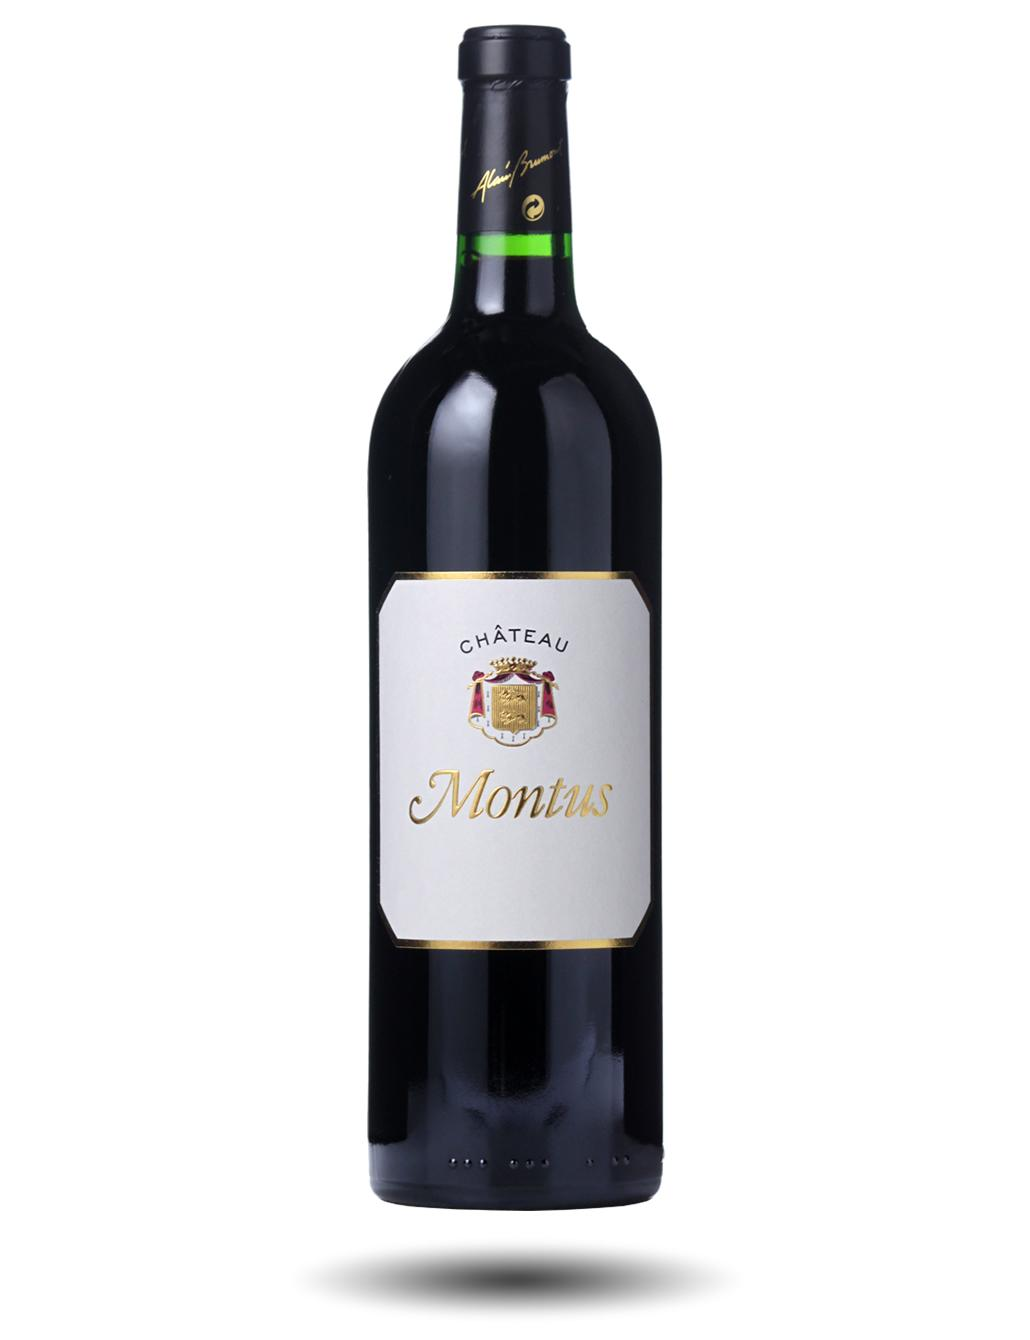 Buy ch teau montus madiran alain brumont 2011 at uvinum for Buy chateaubriand